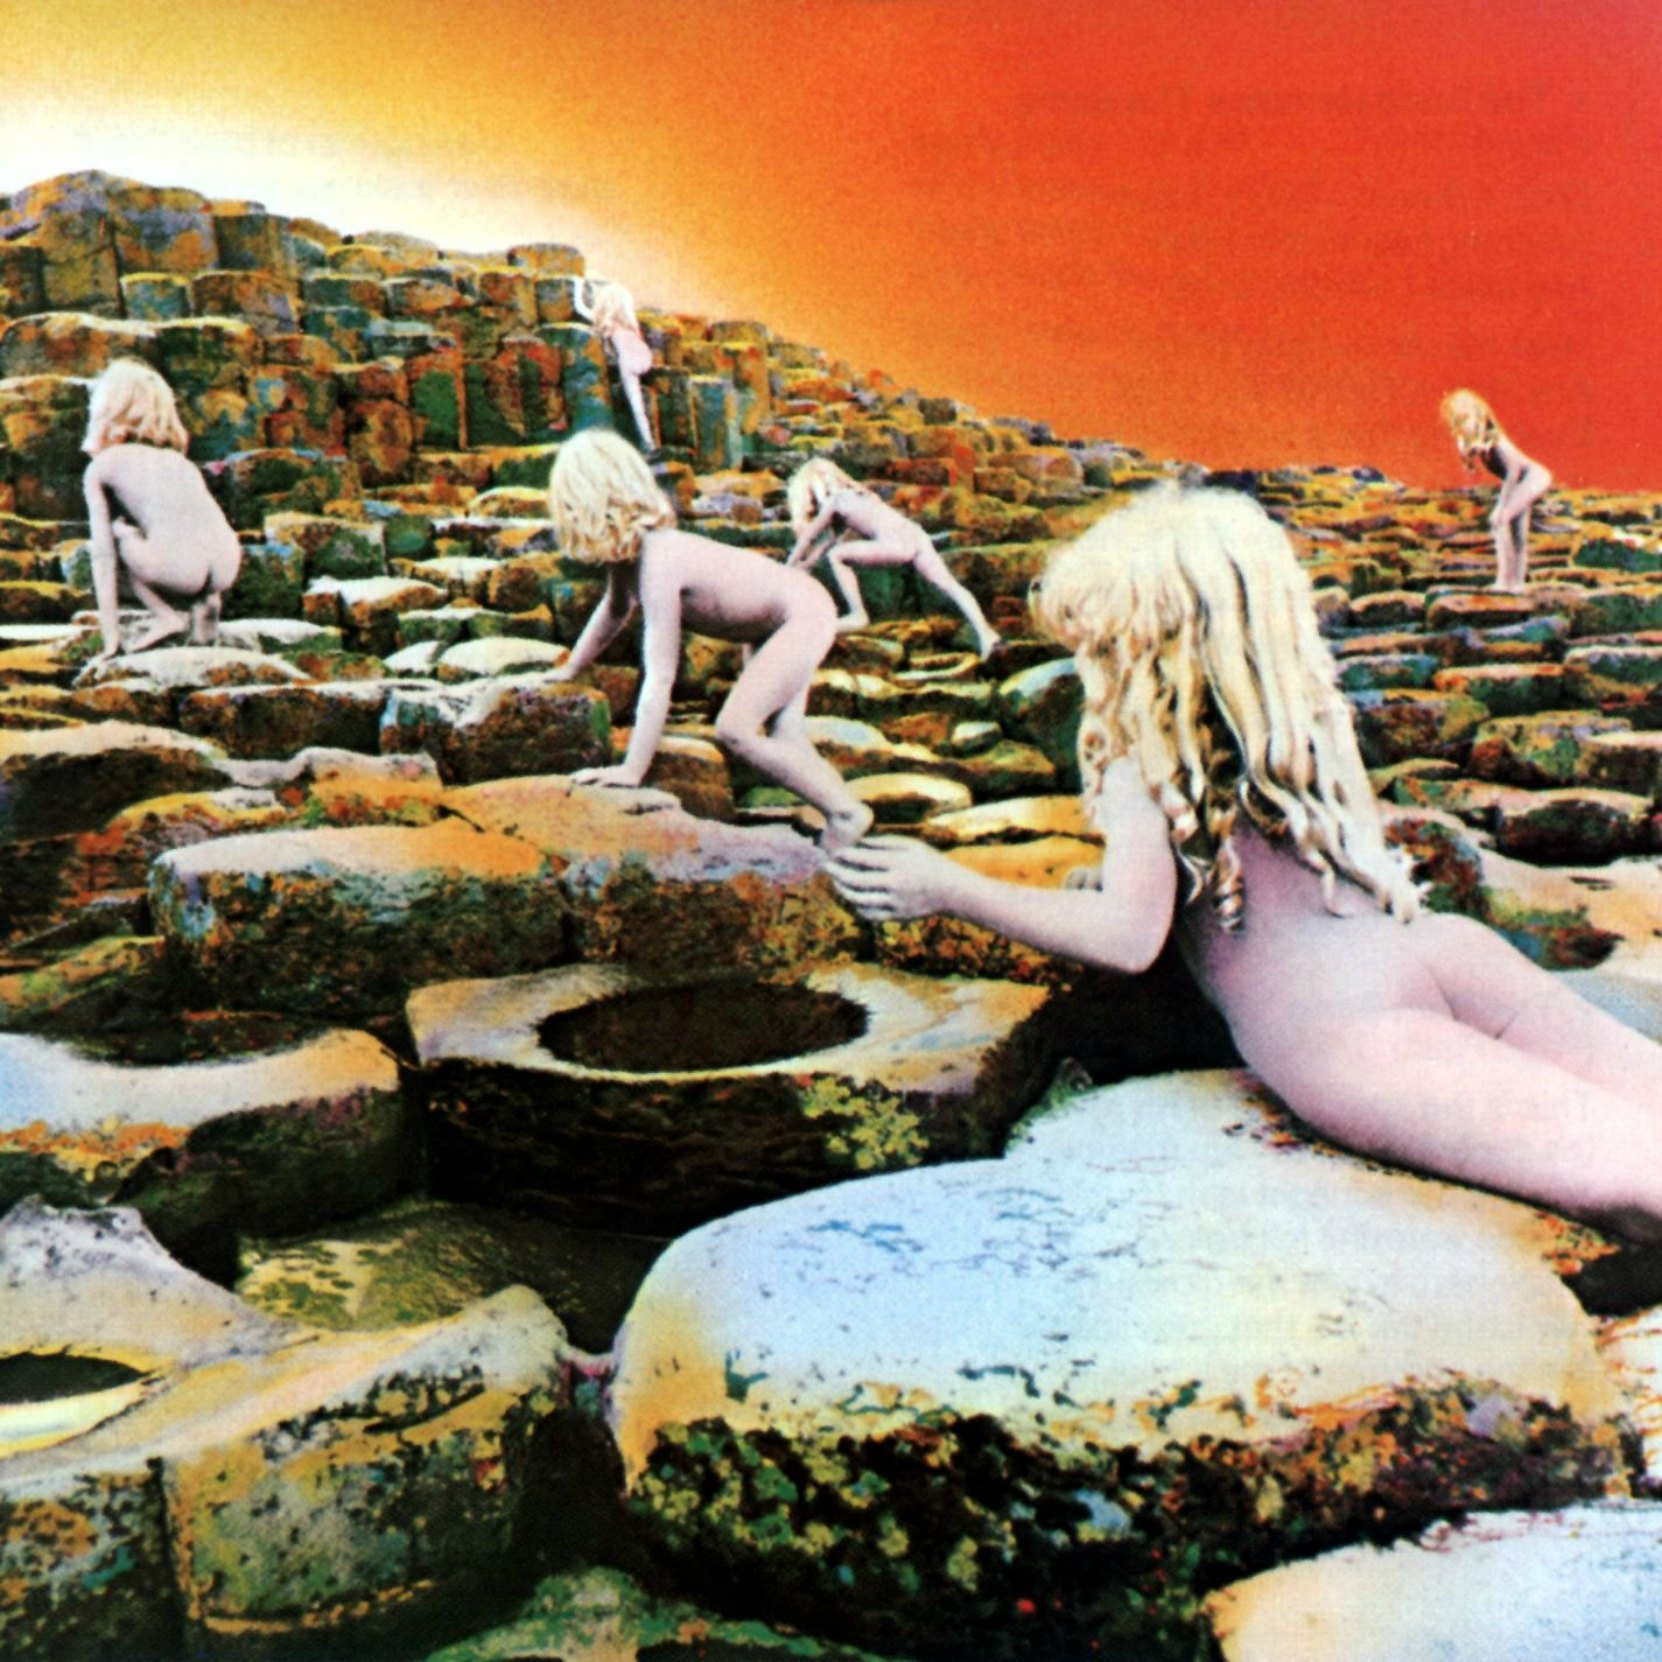 Album cover - Led Zeppelin, Houses Of The Holy, released 1973